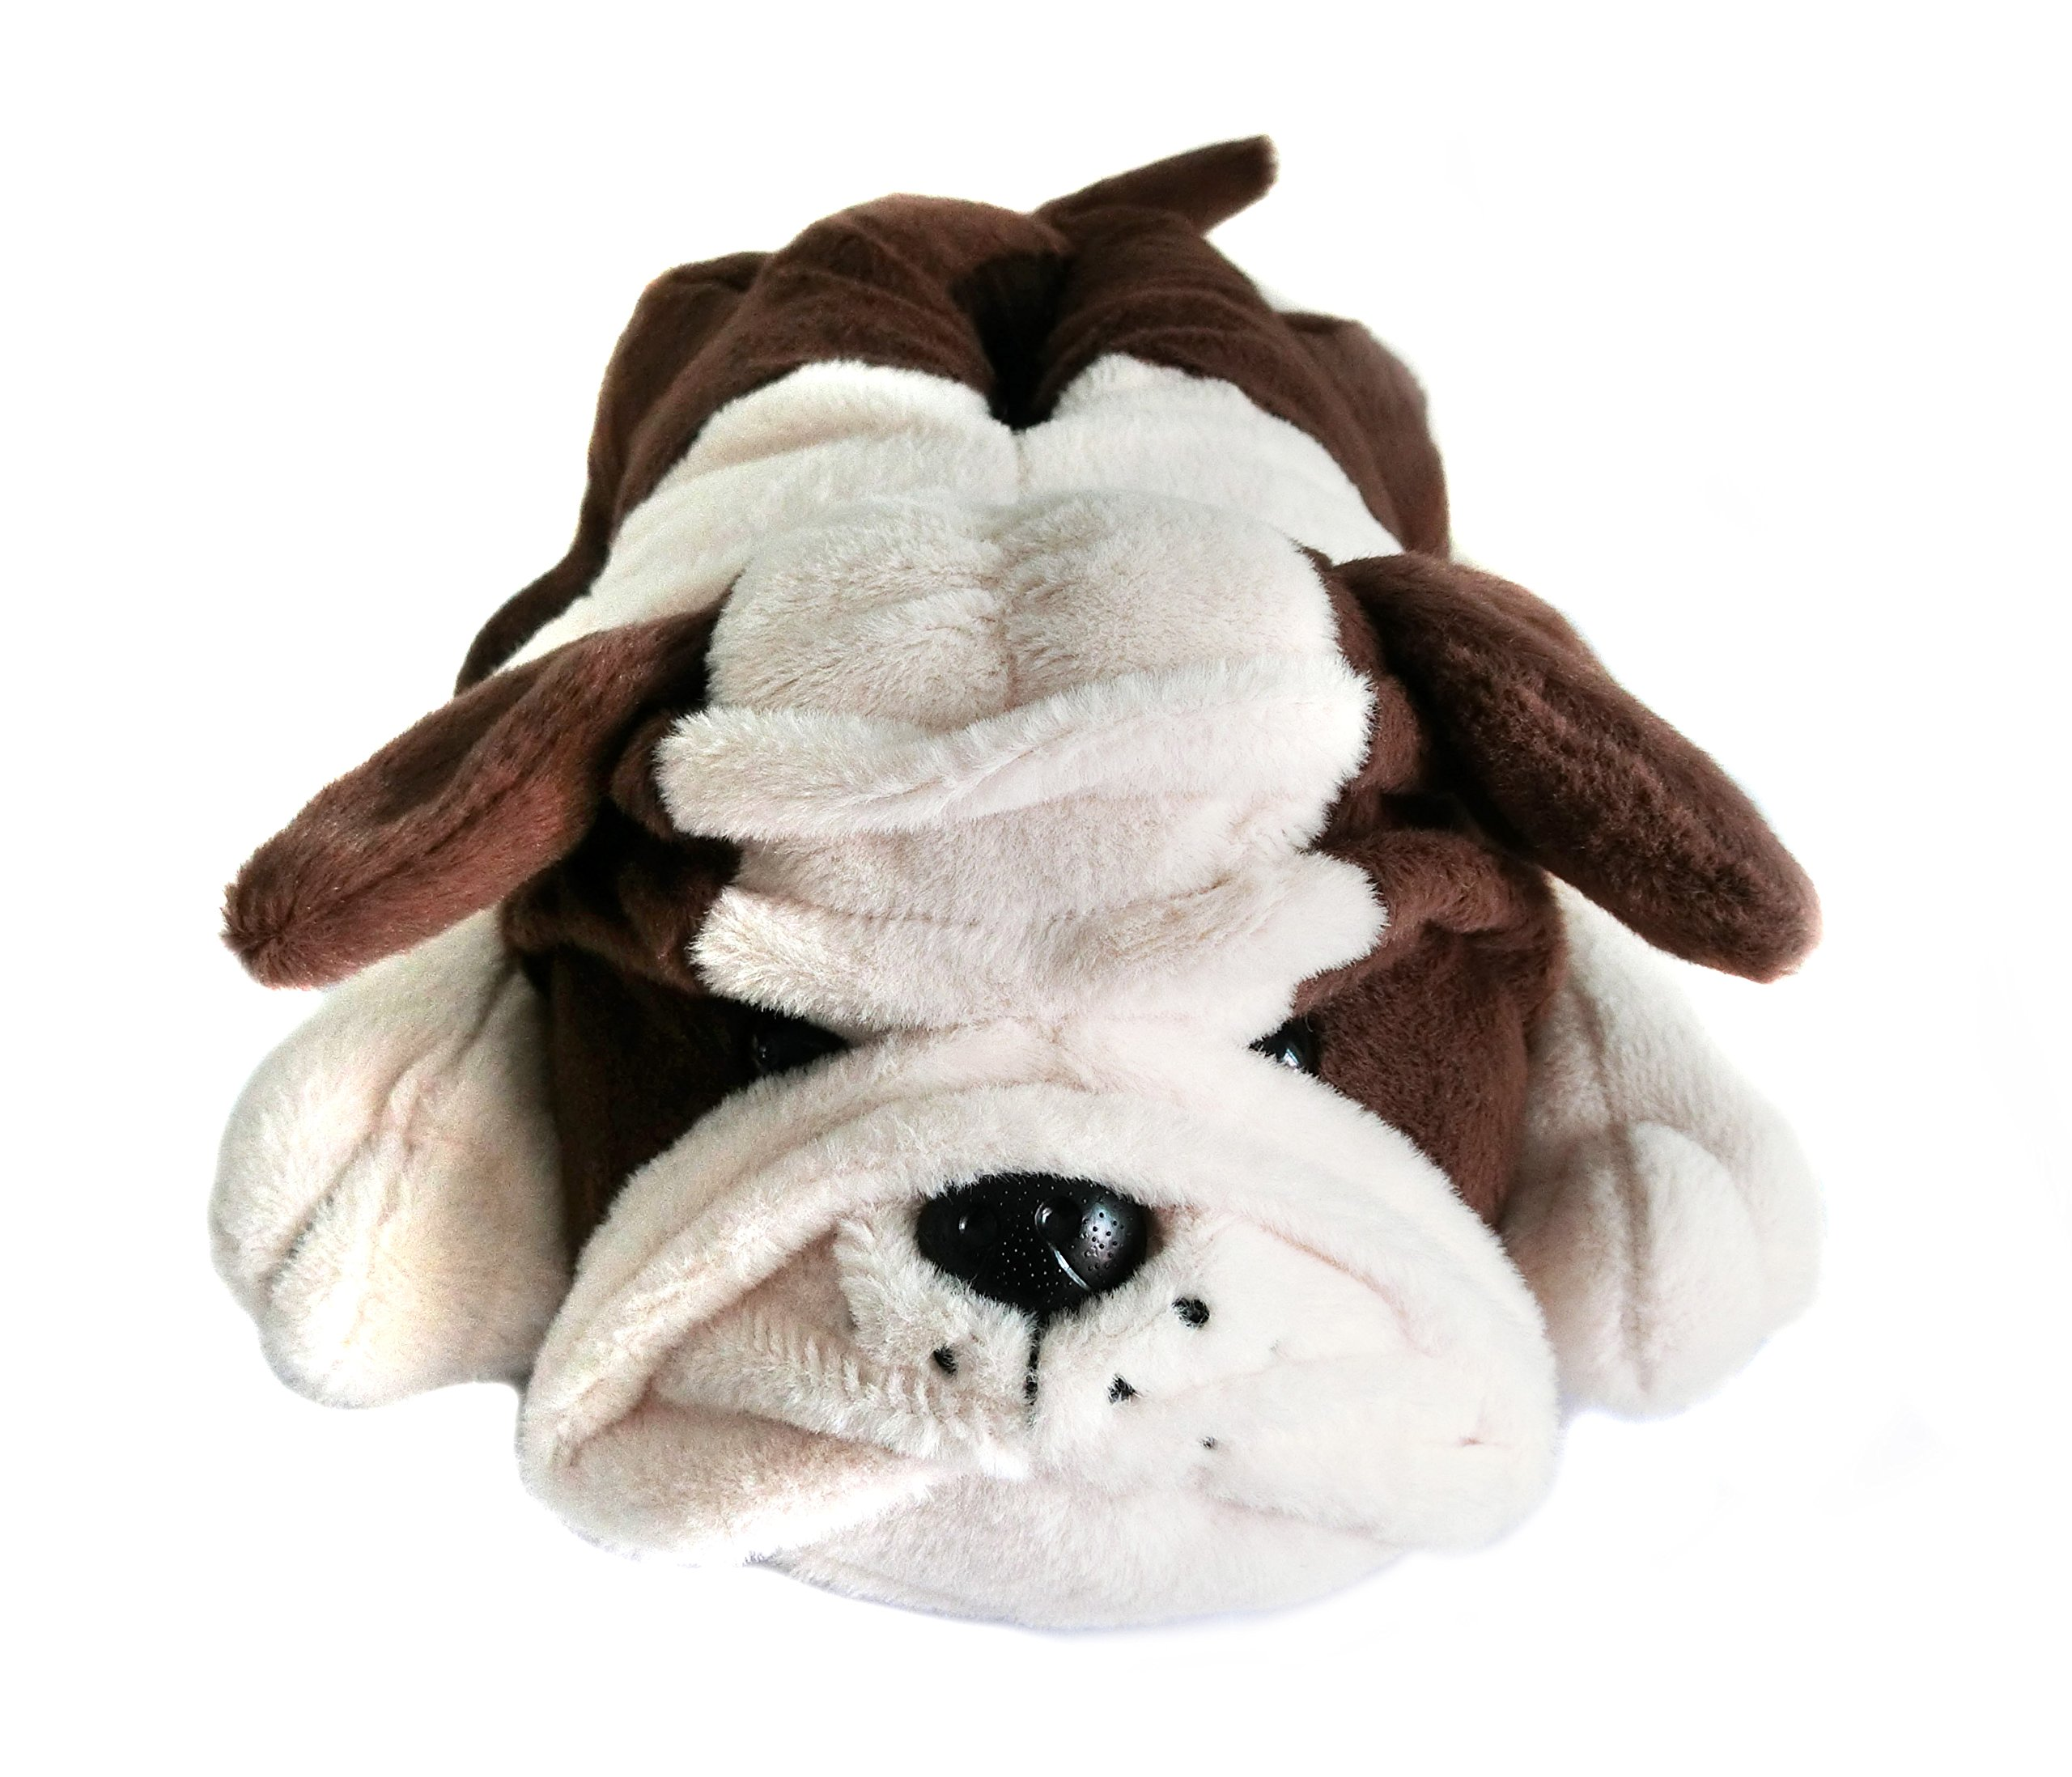 Fuzzy Winter Indoor Animal Bulldog Slippers for Adult and Kid, Bull Dogs (US Women Size 7-9, Coffee Bulldog) by Onmygogo (Image #4)